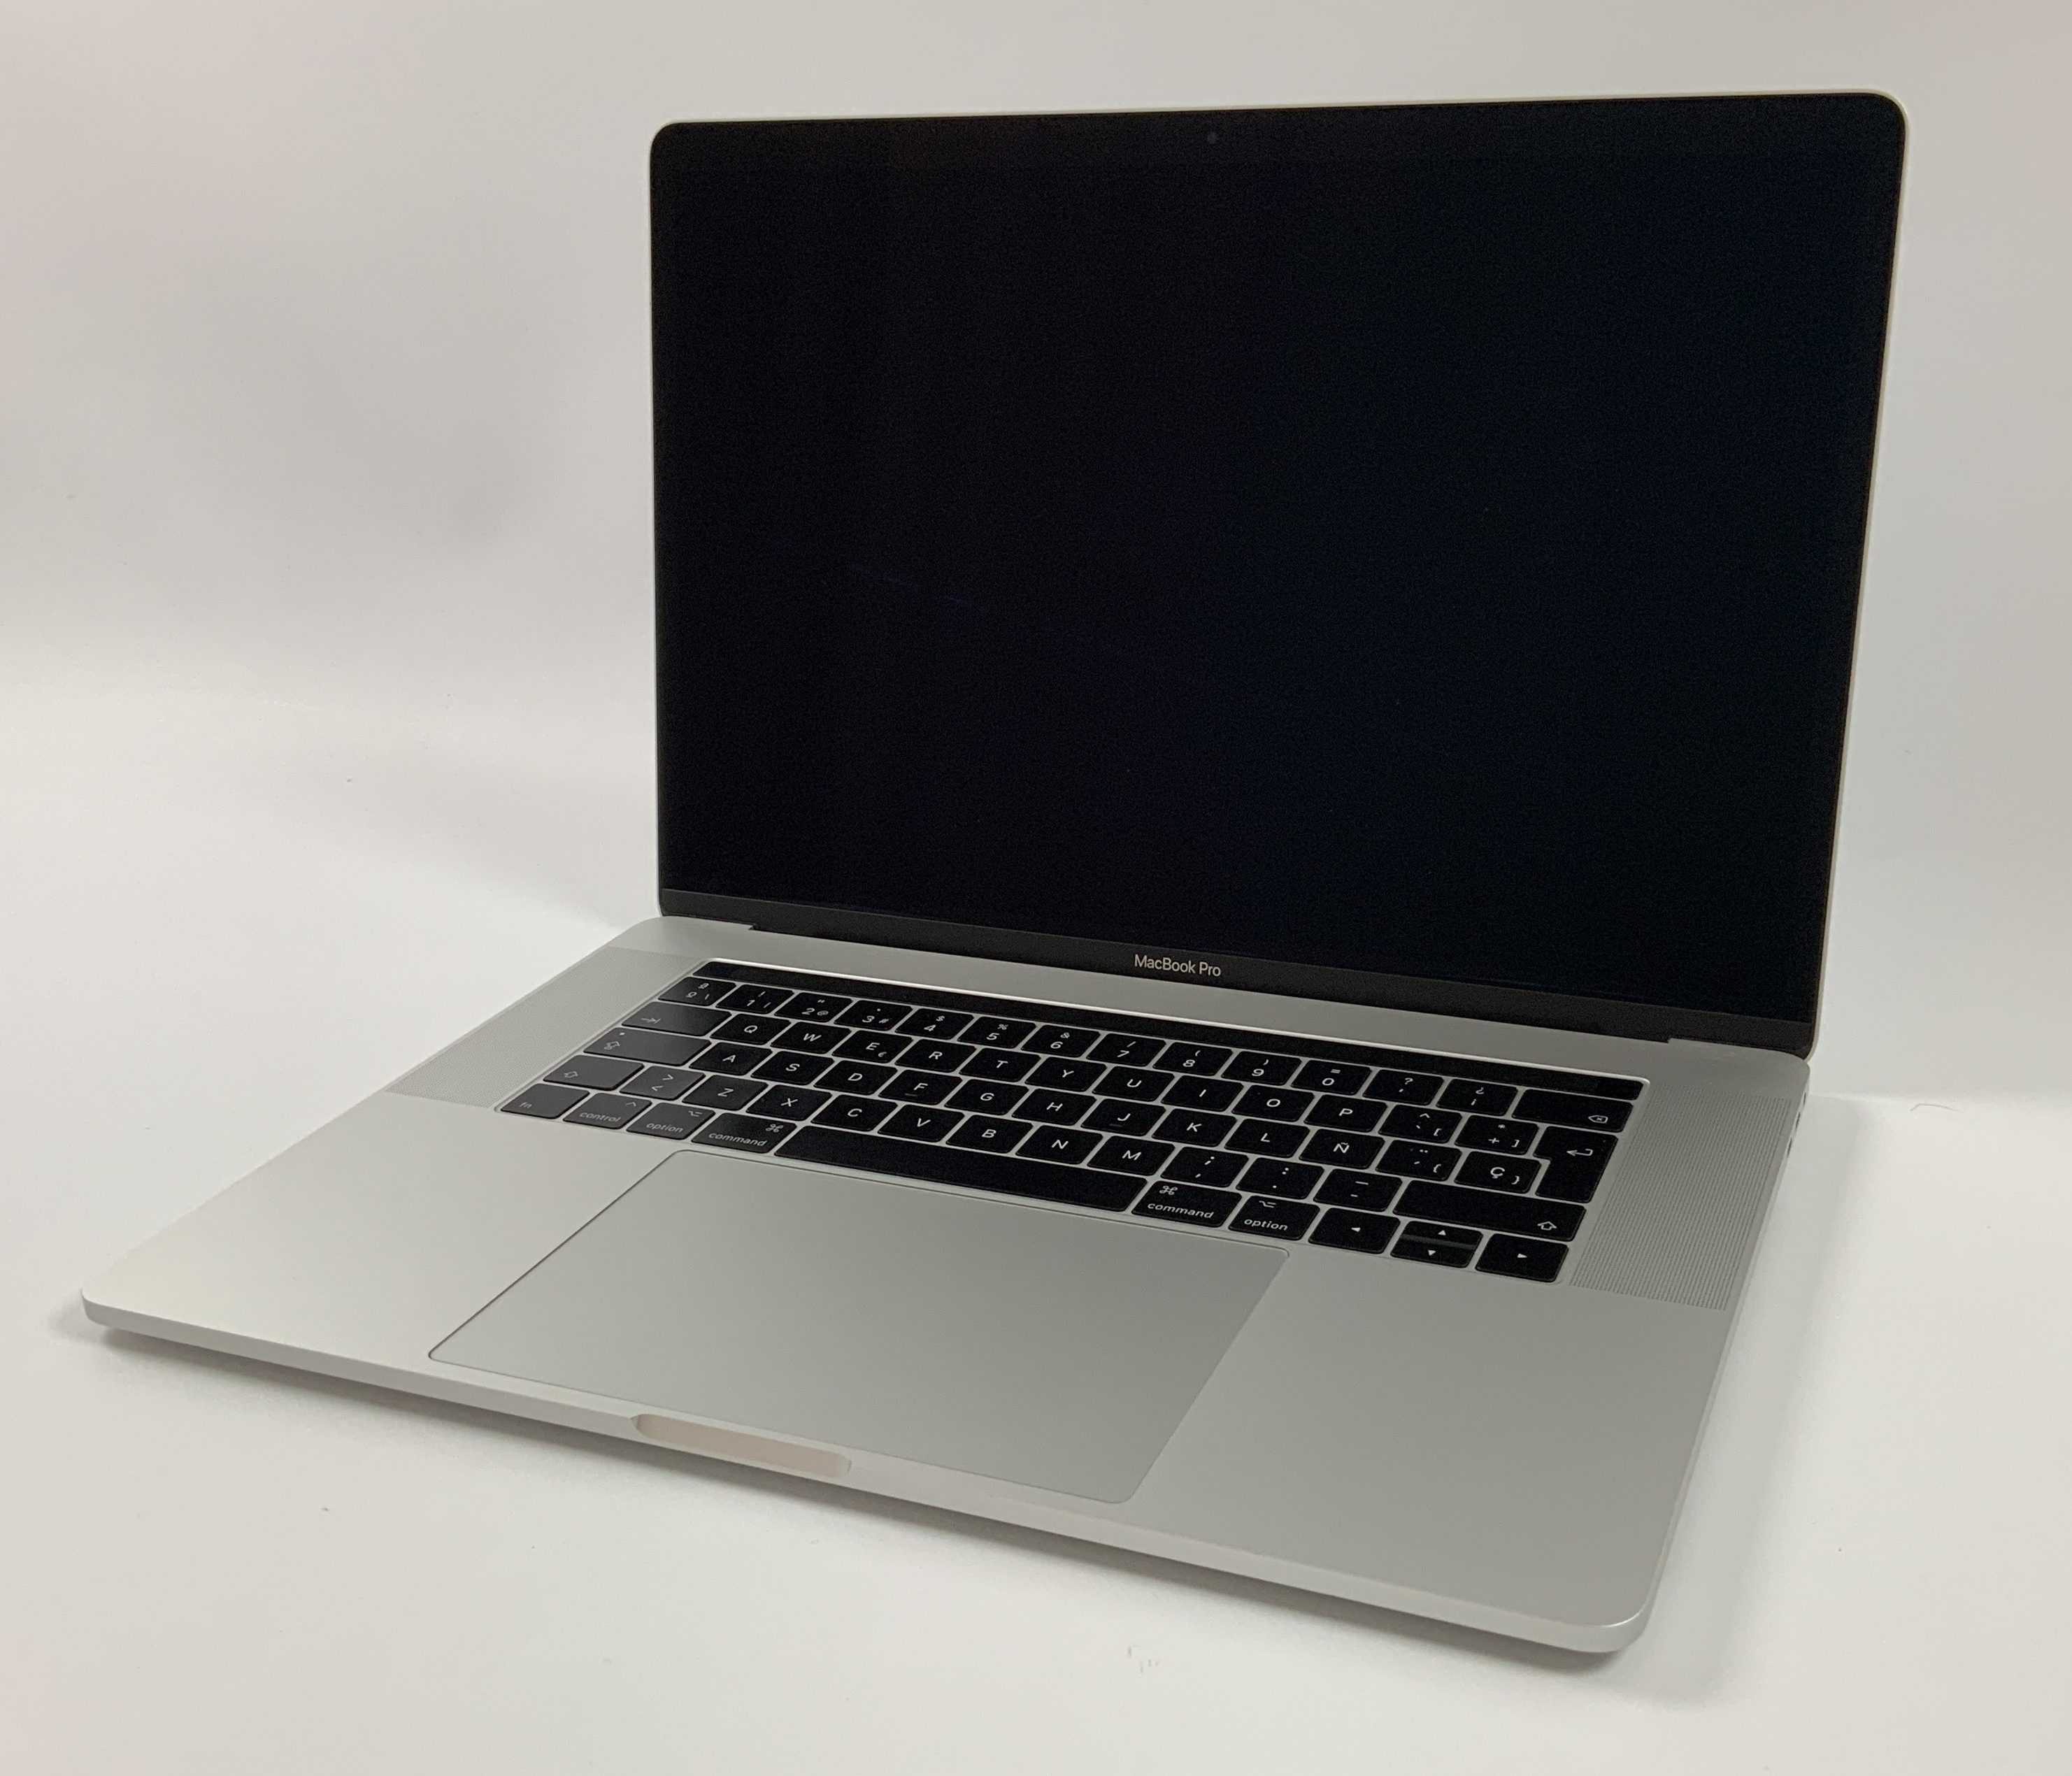 "MacBook Pro 15"" Touch Bar Late 2016 (Intel Quad-Core i7 2.6 GHz 16 GB RAM 1 TB SSD), Silver, Intel Quad-Core i7 2.6 GHz, 16 GB RAM, 1 TB SSD, Afbeelding 1"